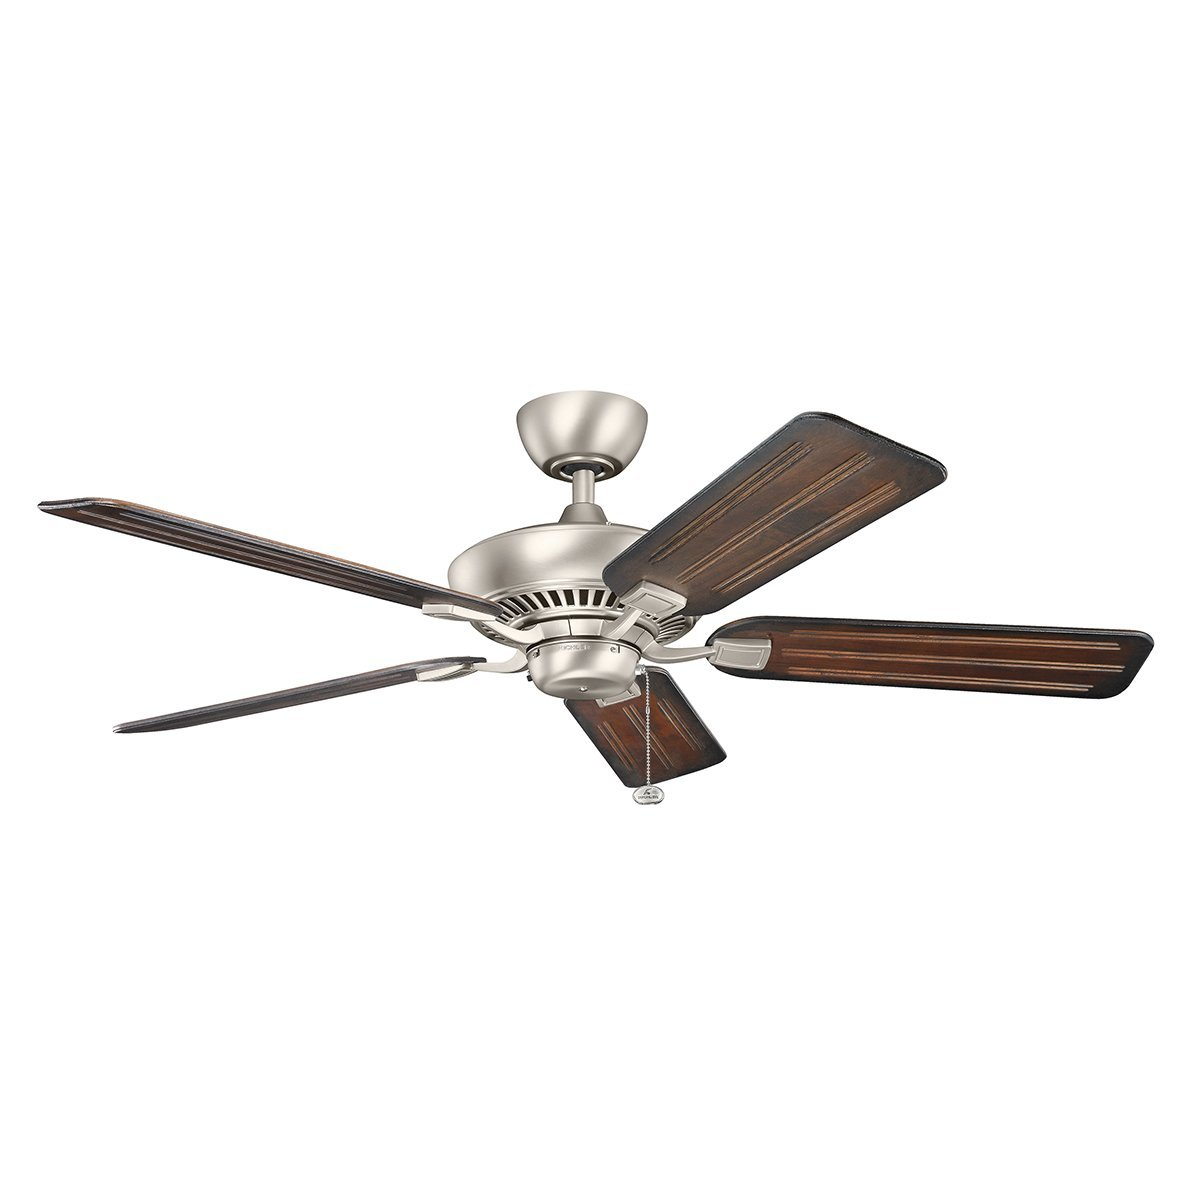 Kichler 300117NI Canfield 52IN 5-Blade Energy Star Ceiling Fan, Brushed Nickel Finish with Reversible Cherry/Walnut Blades